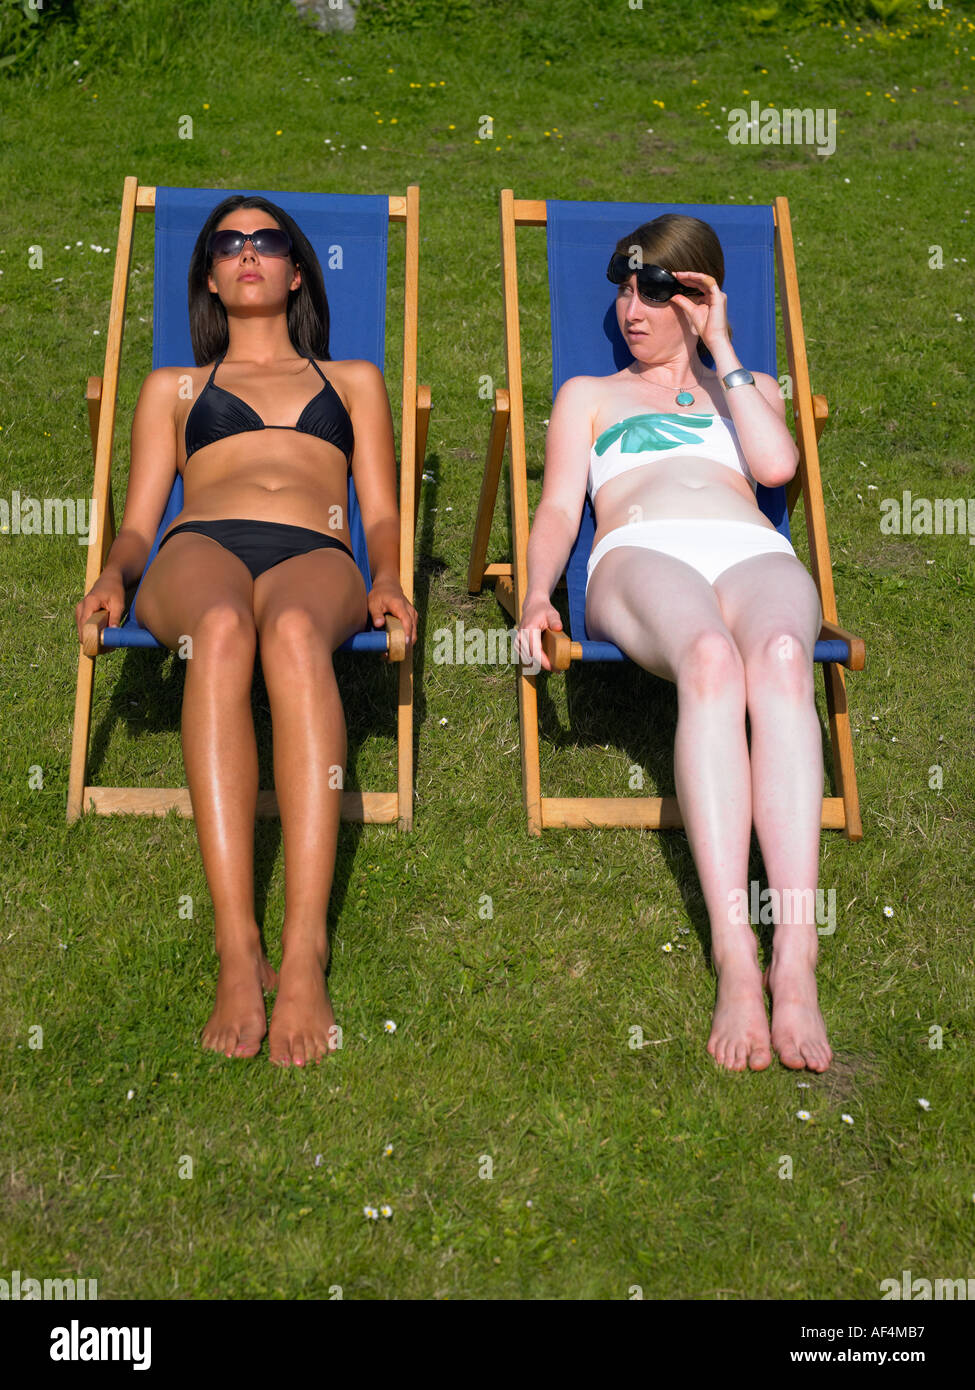 Two Girls Sunbathing on Deck Chairs One is tanned one is pale - Stock Image